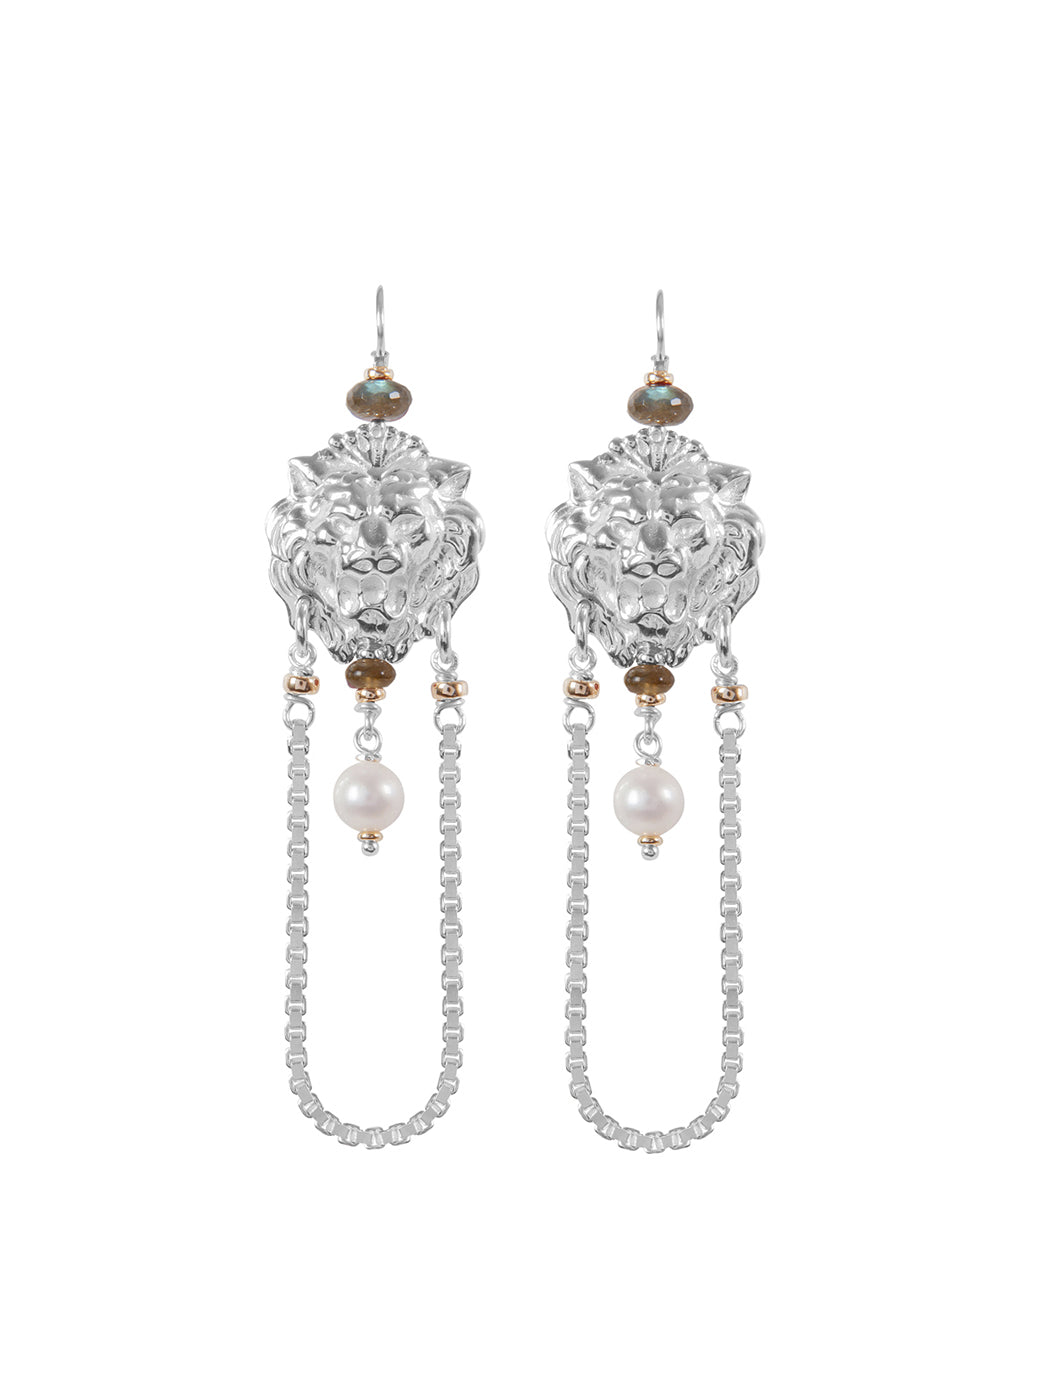 Fiorina Jewellery Trevi Chain Earrings Labradorite